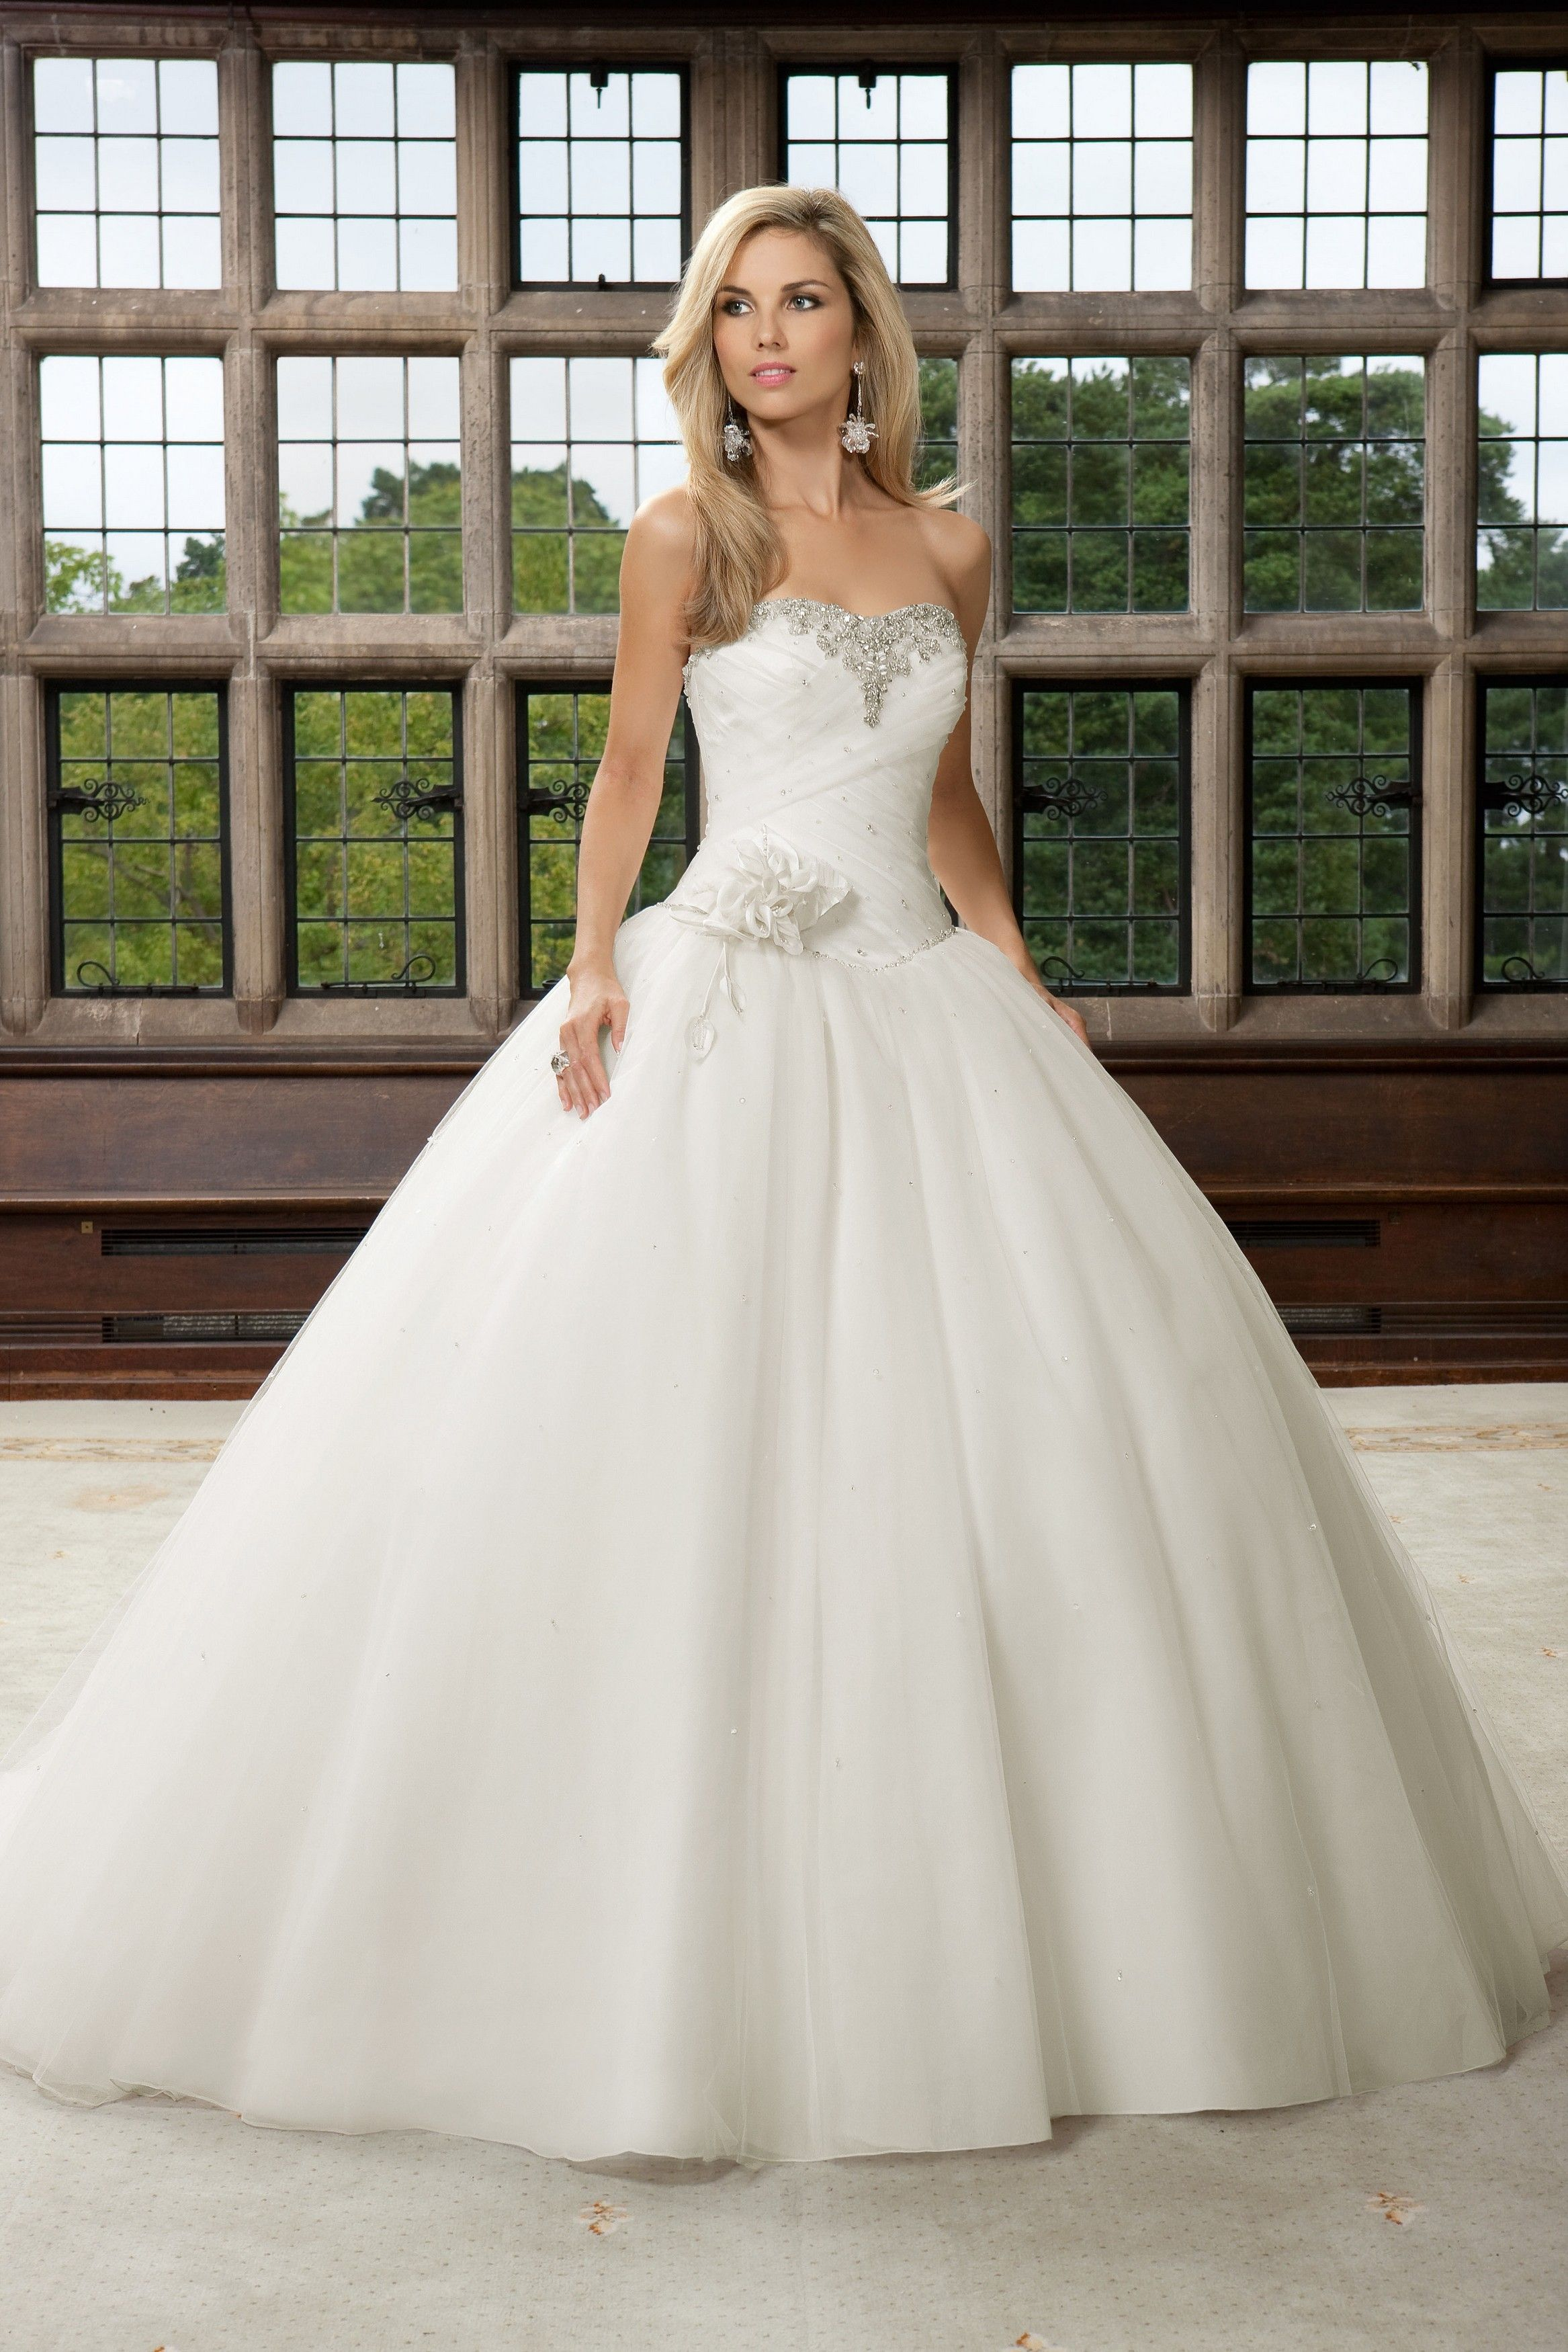 White Cinderella Wedding Dresses